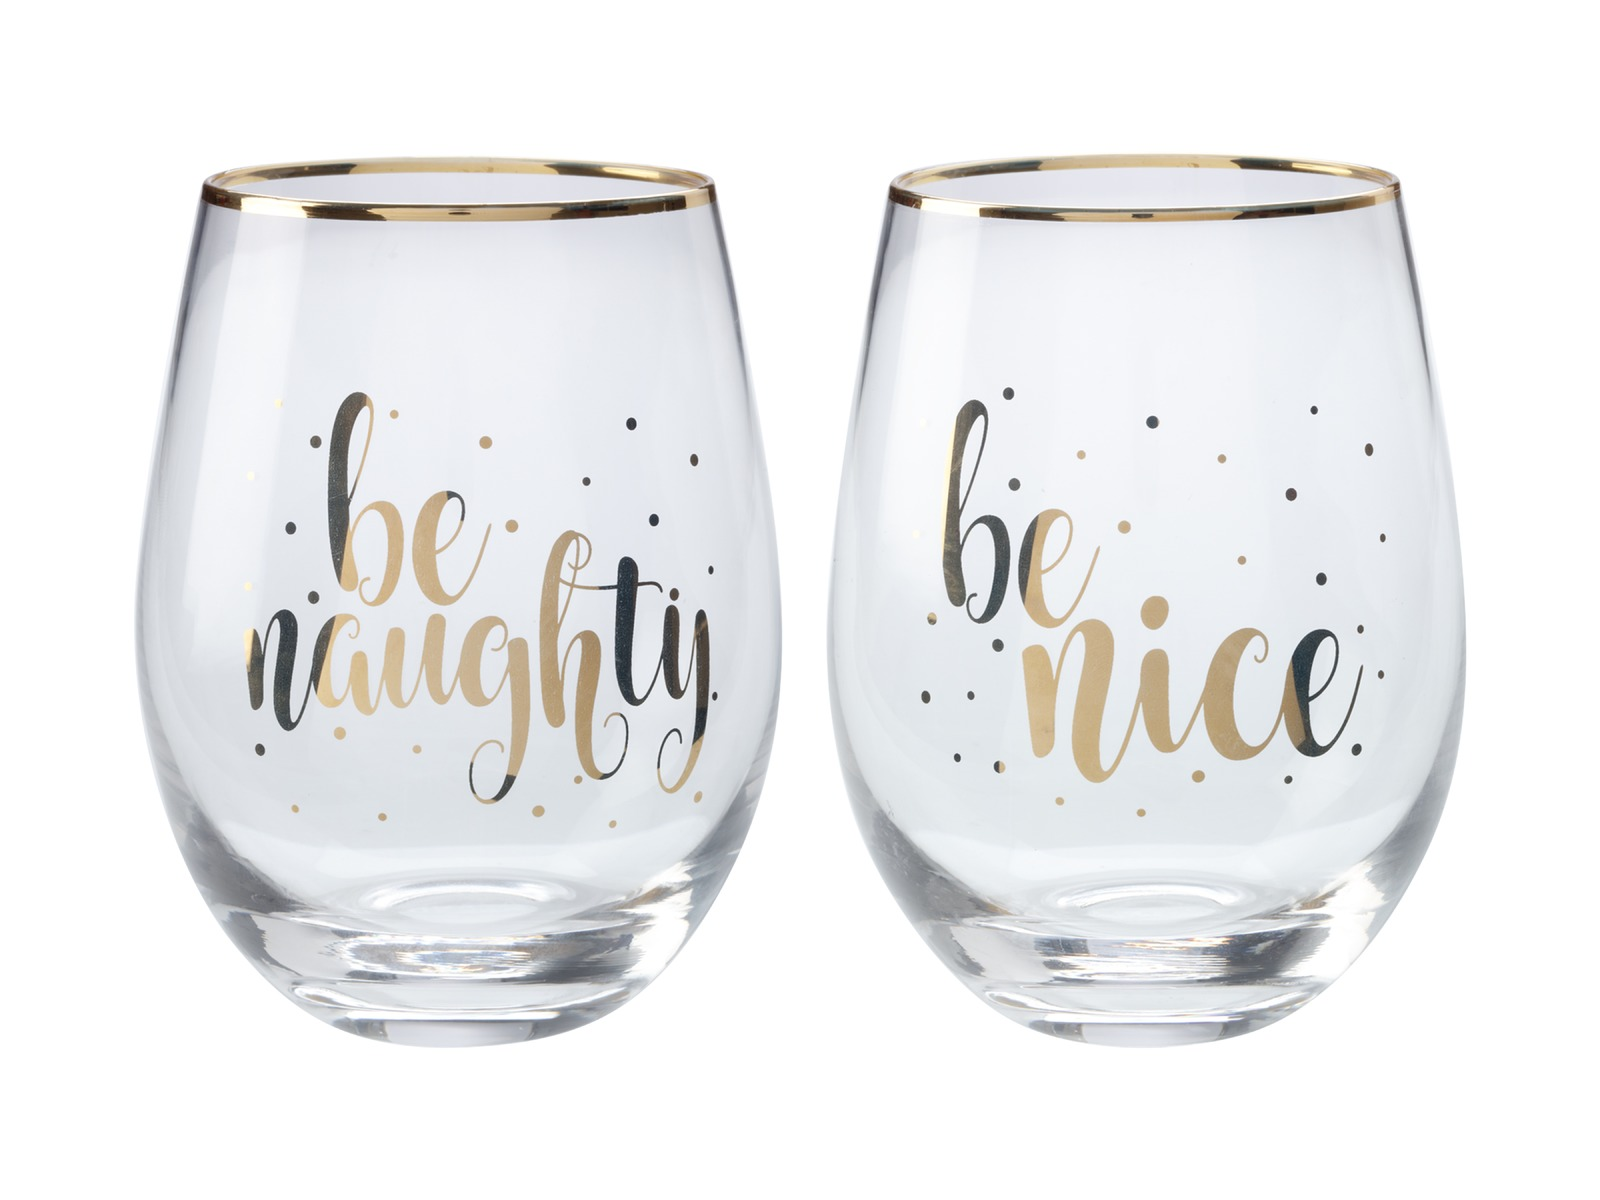 Maxwell & Williams: Celebrations Stemless Glass Set of 2 - Naughty Nice (500ml) image